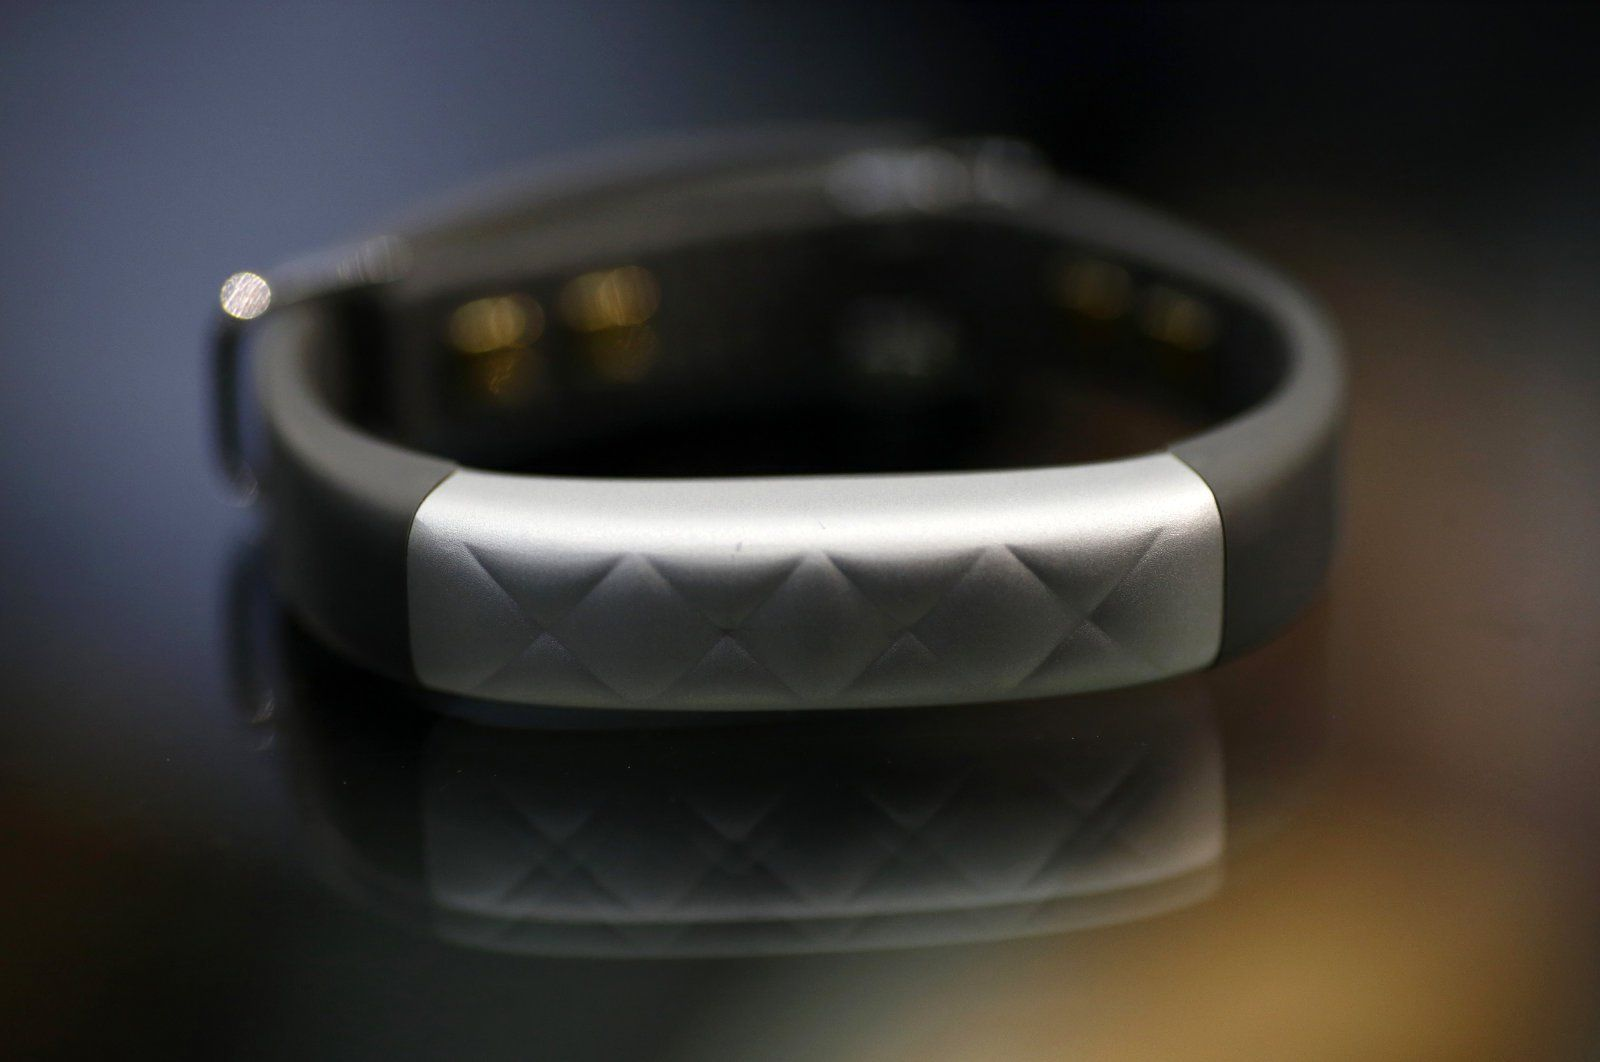 Fitbit drops its attempt to ban Jawbone device sales - http://www.sogotechnews.com/2016/12/24/fitbit-drops-its-attempt-to-ban-jawbone-device-sales-2/?utm_source=Pinterest&utm_medium=autoshare&utm_campaign=SOGO+Tech+News